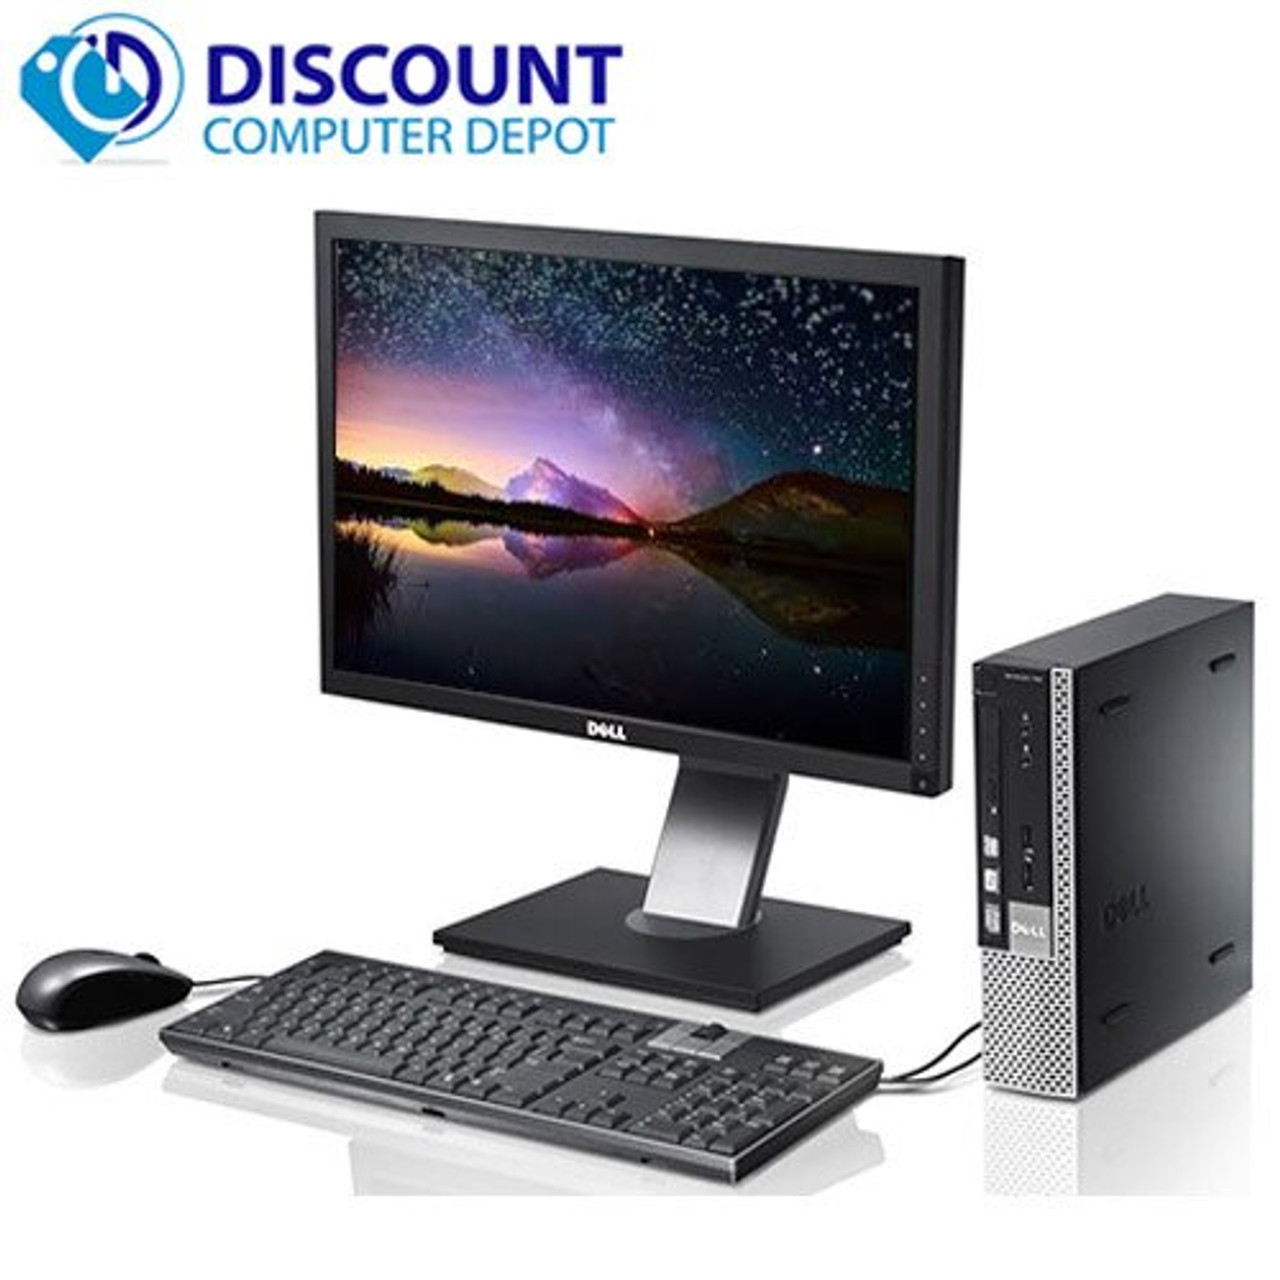 Phenomenal Fast And Dependable Dell Desktop Intel Core I5 Processor 8Gb Ram 500Gb Hdd Wifi Windows 10 With 22 Monitor Download Free Architecture Designs Terchretrmadebymaigaardcom